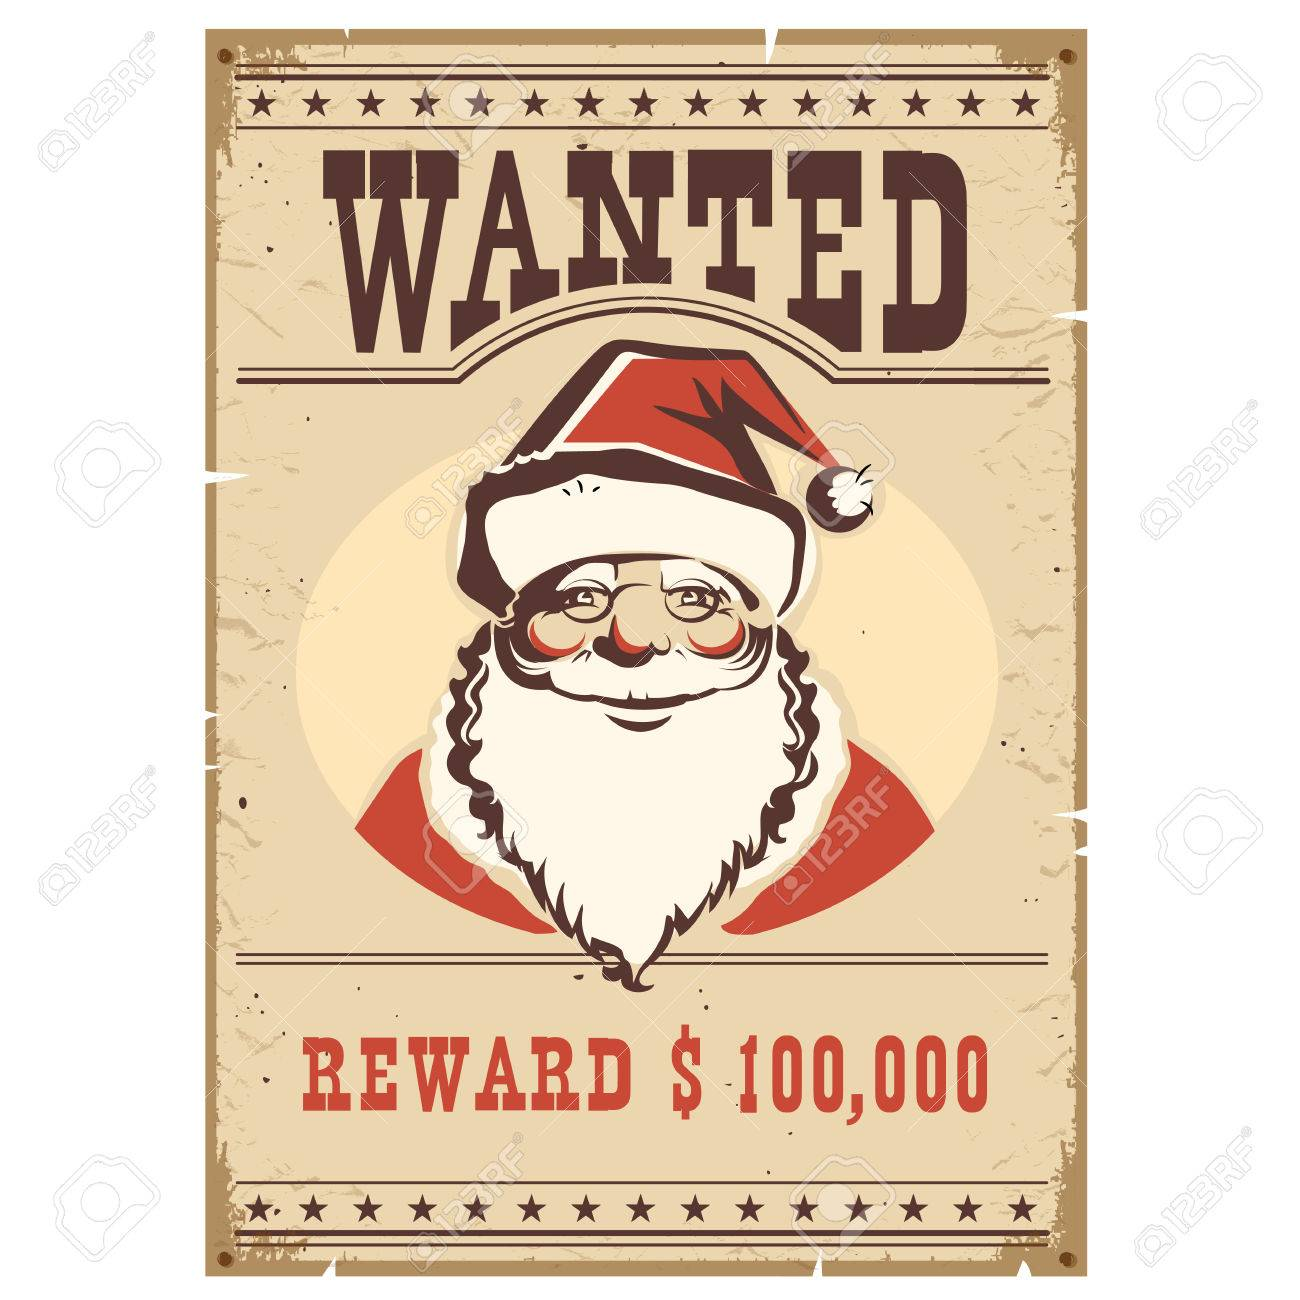 d9fa0ab1d1473f Wanted Poster Santa Claus On Old Paper.Western Western Card Royalty ...